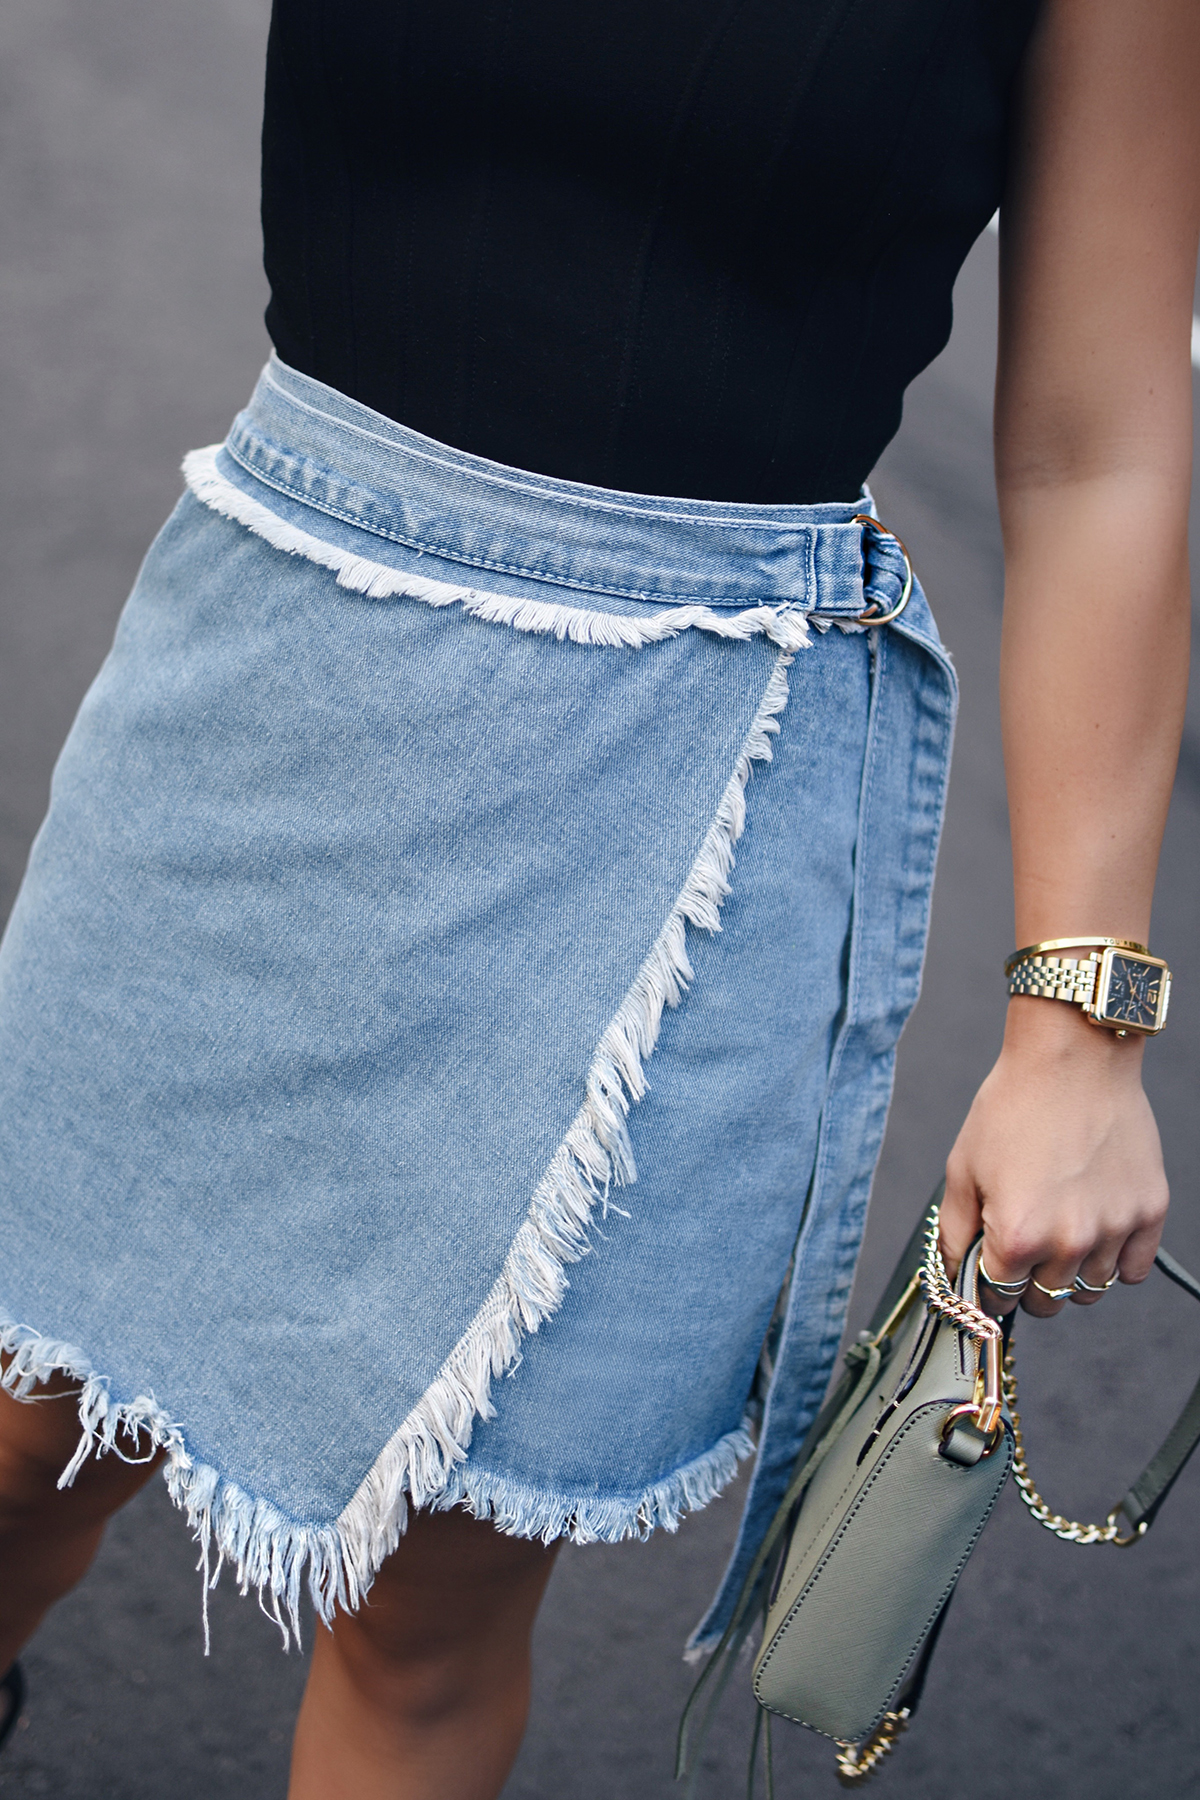 Carolina Hellal of Chic Talk wearing a shein denim skirt, Marc Fisher lace up heels, Bailey44 black top and Rebecca Minkoff bag